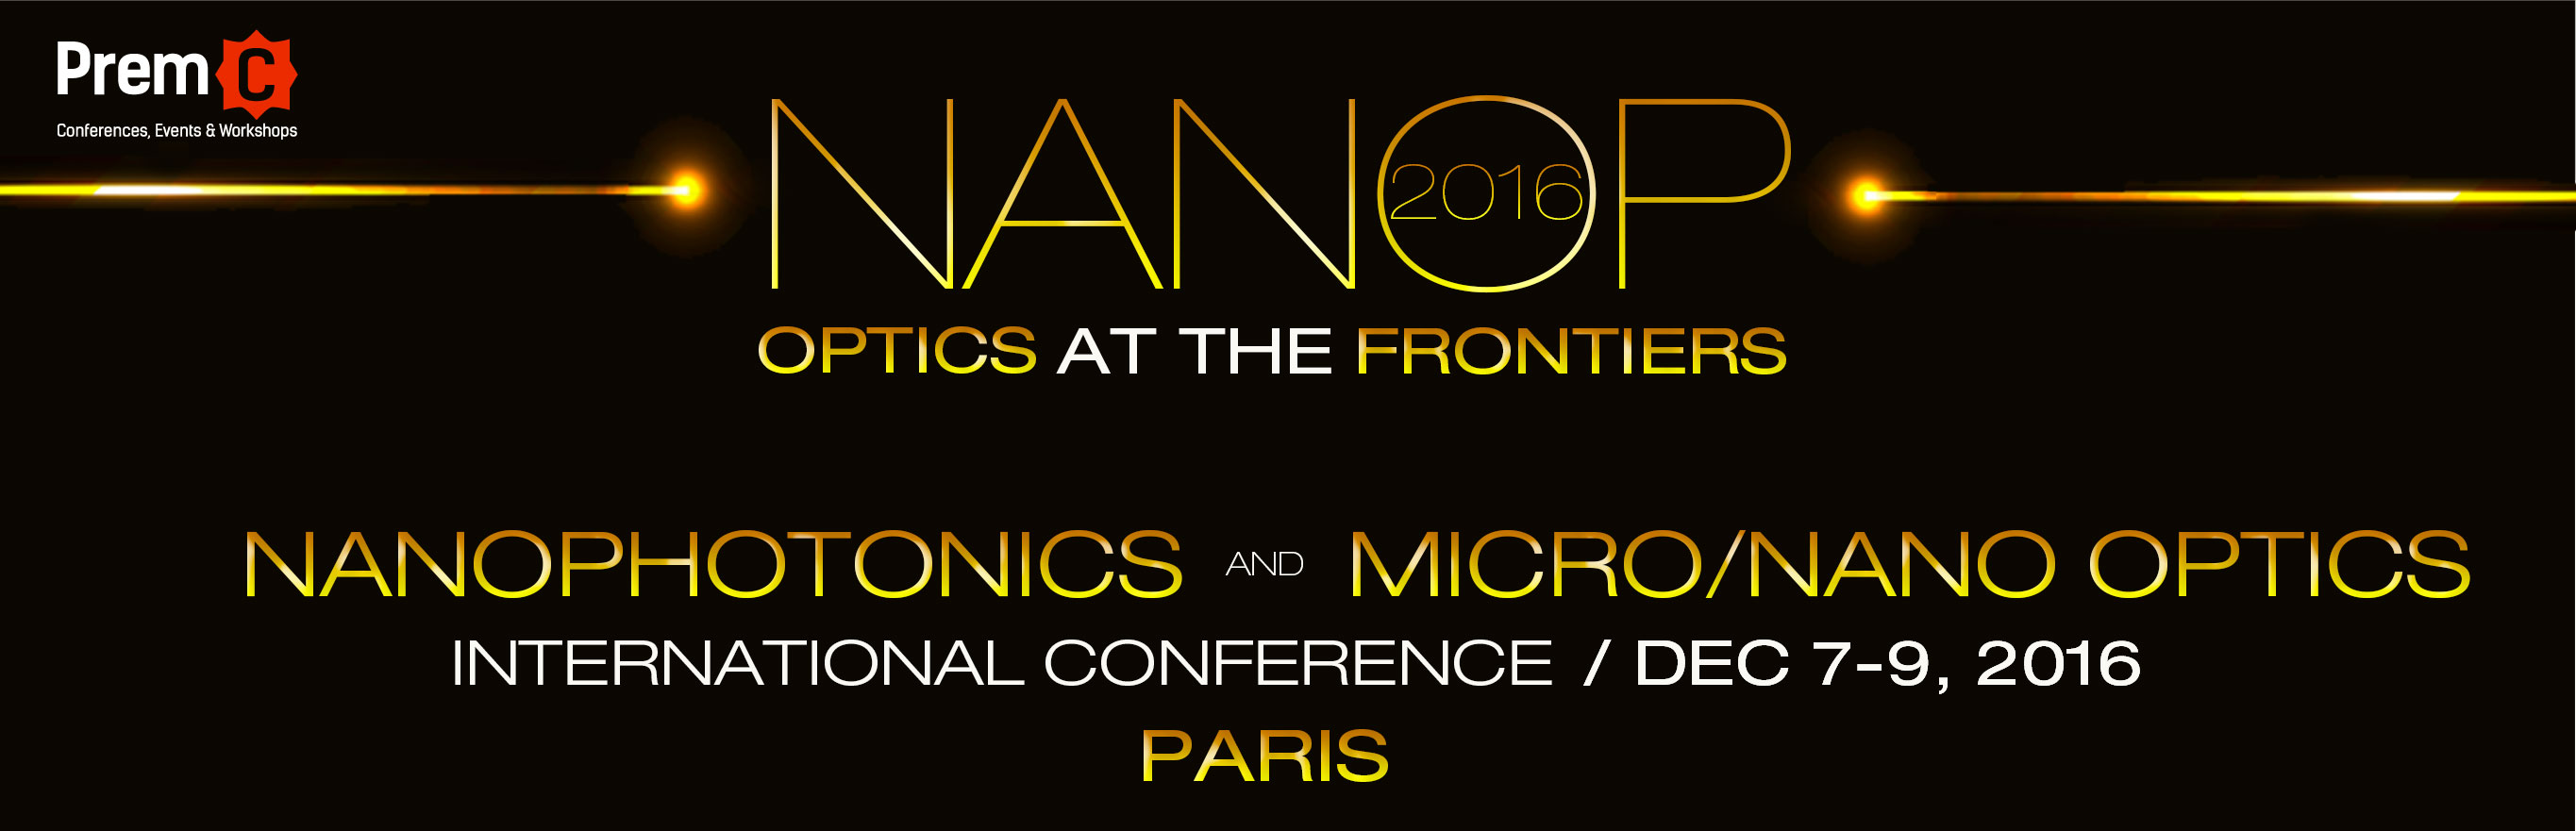 NANOP 2016 - Nanophotonics and Micro/Nano Optics International Conference